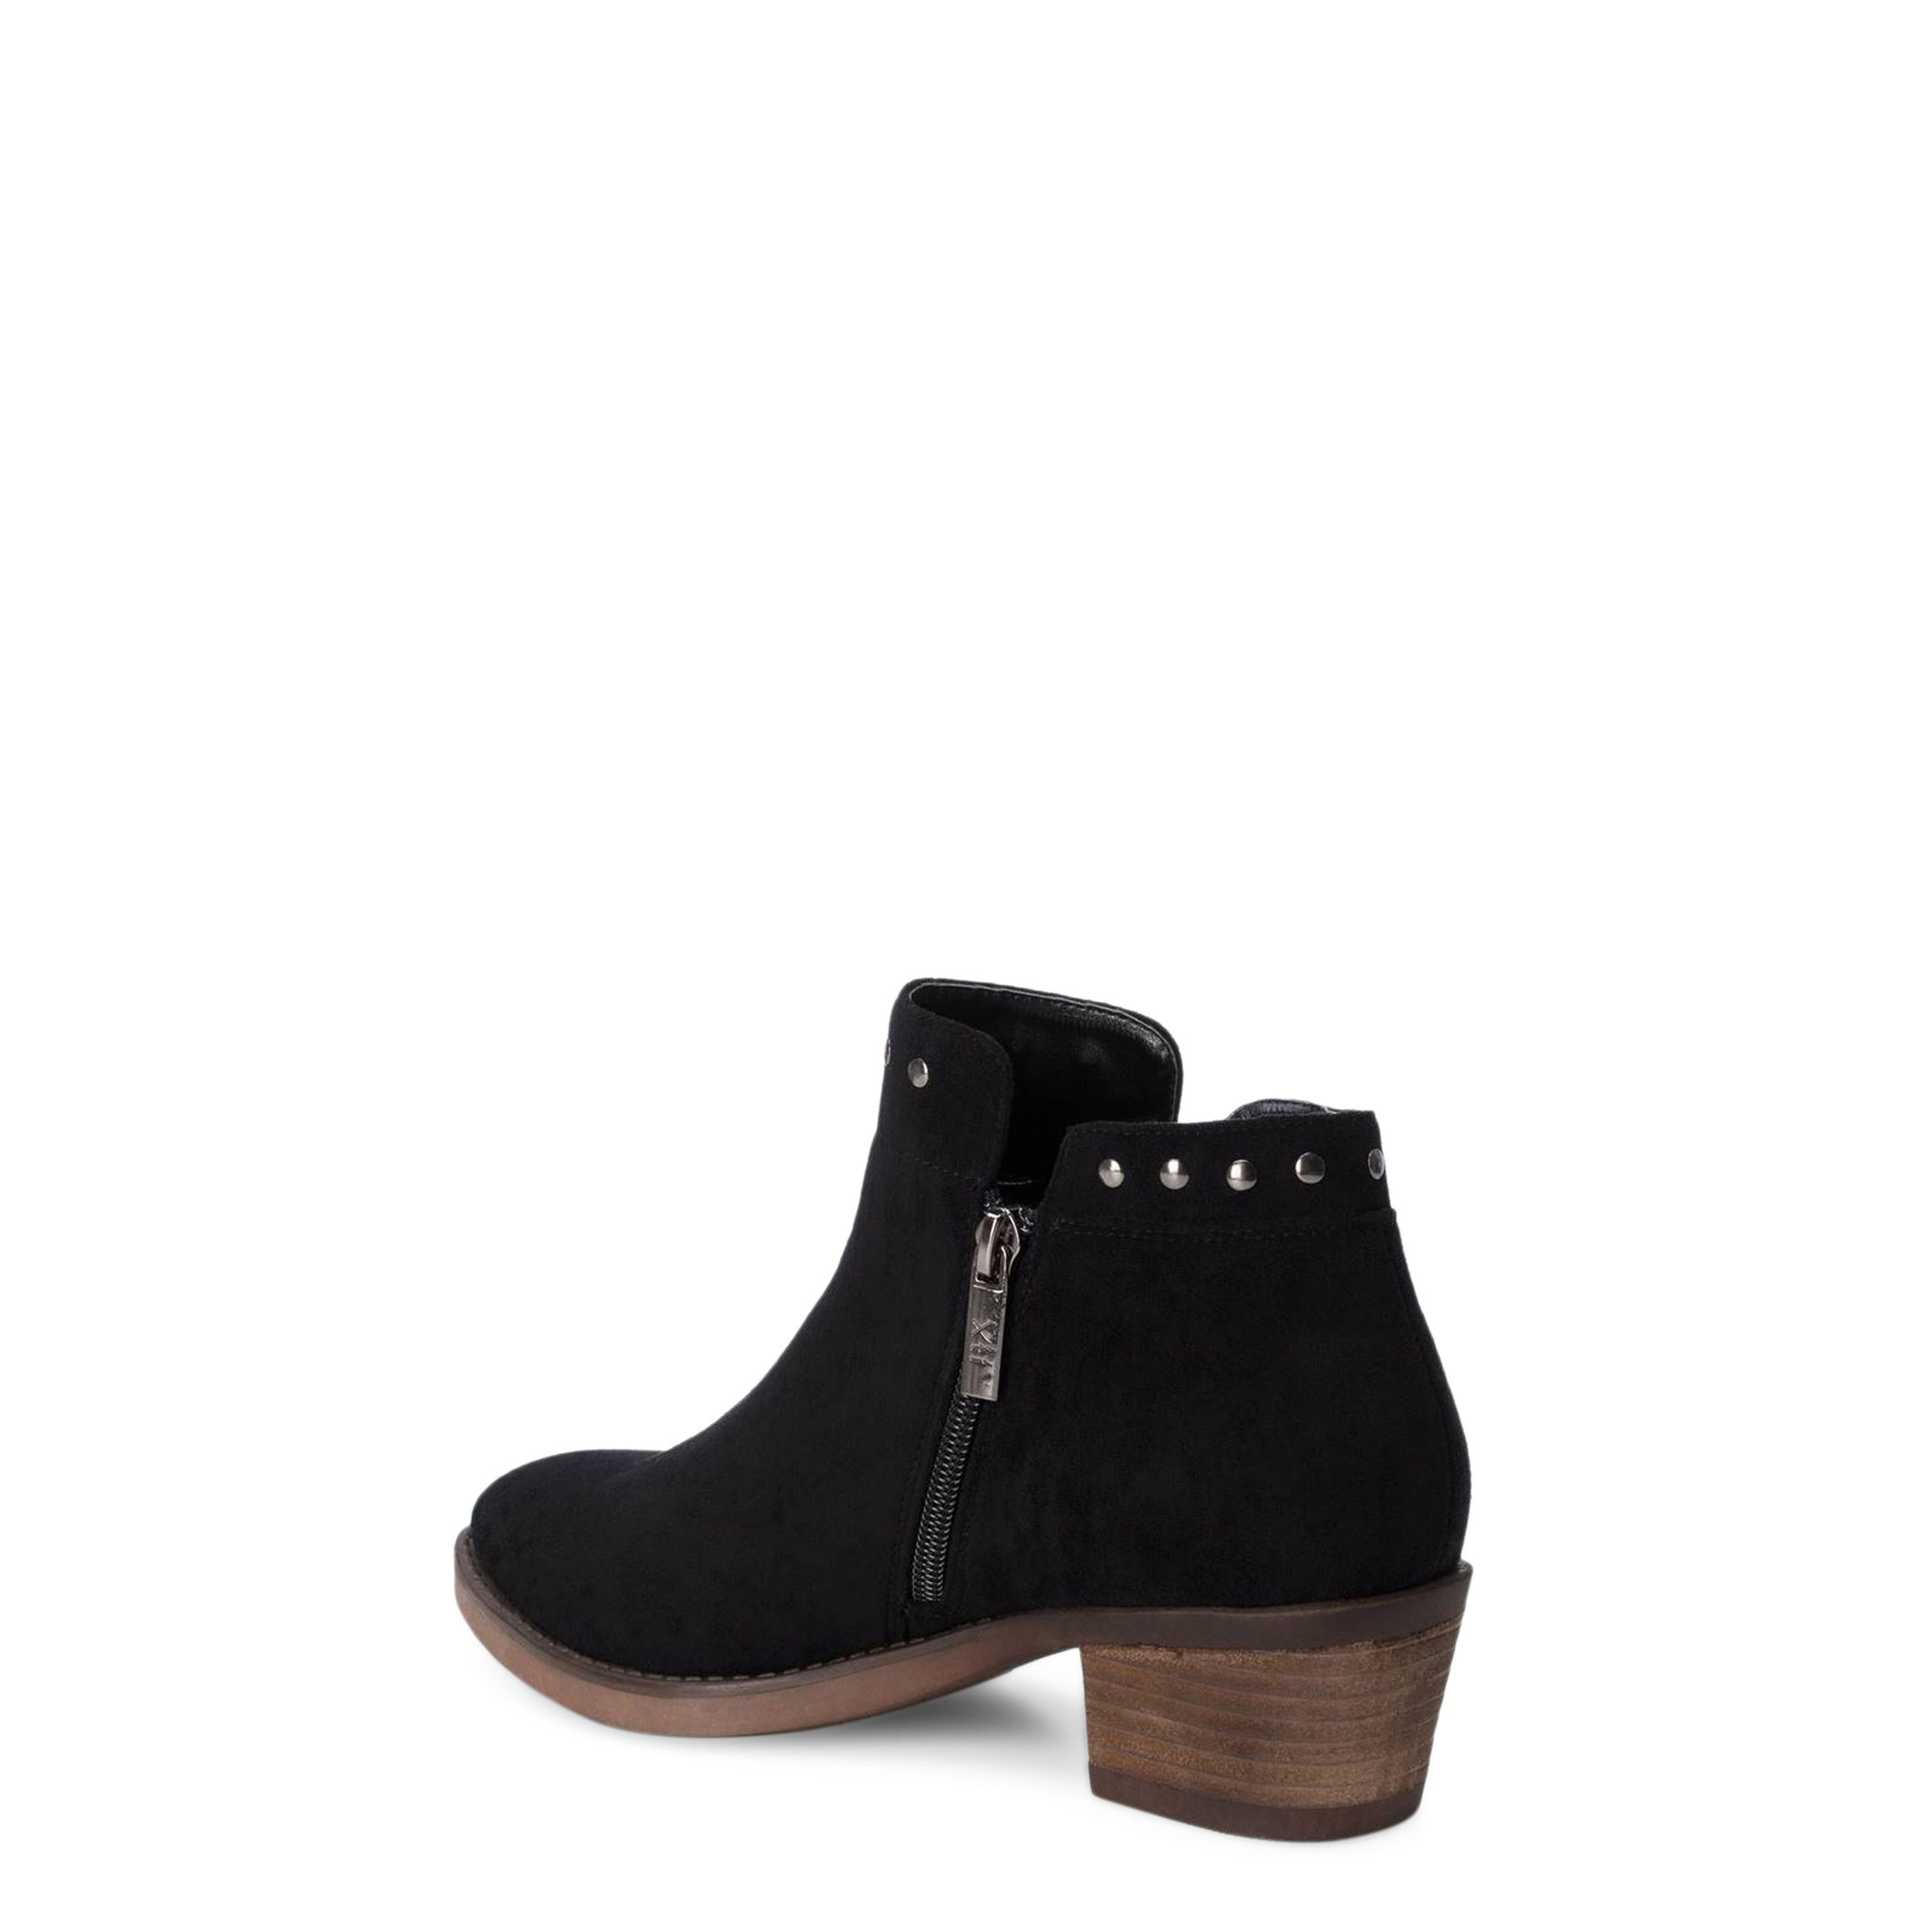 Xti Womens Ankle Boots